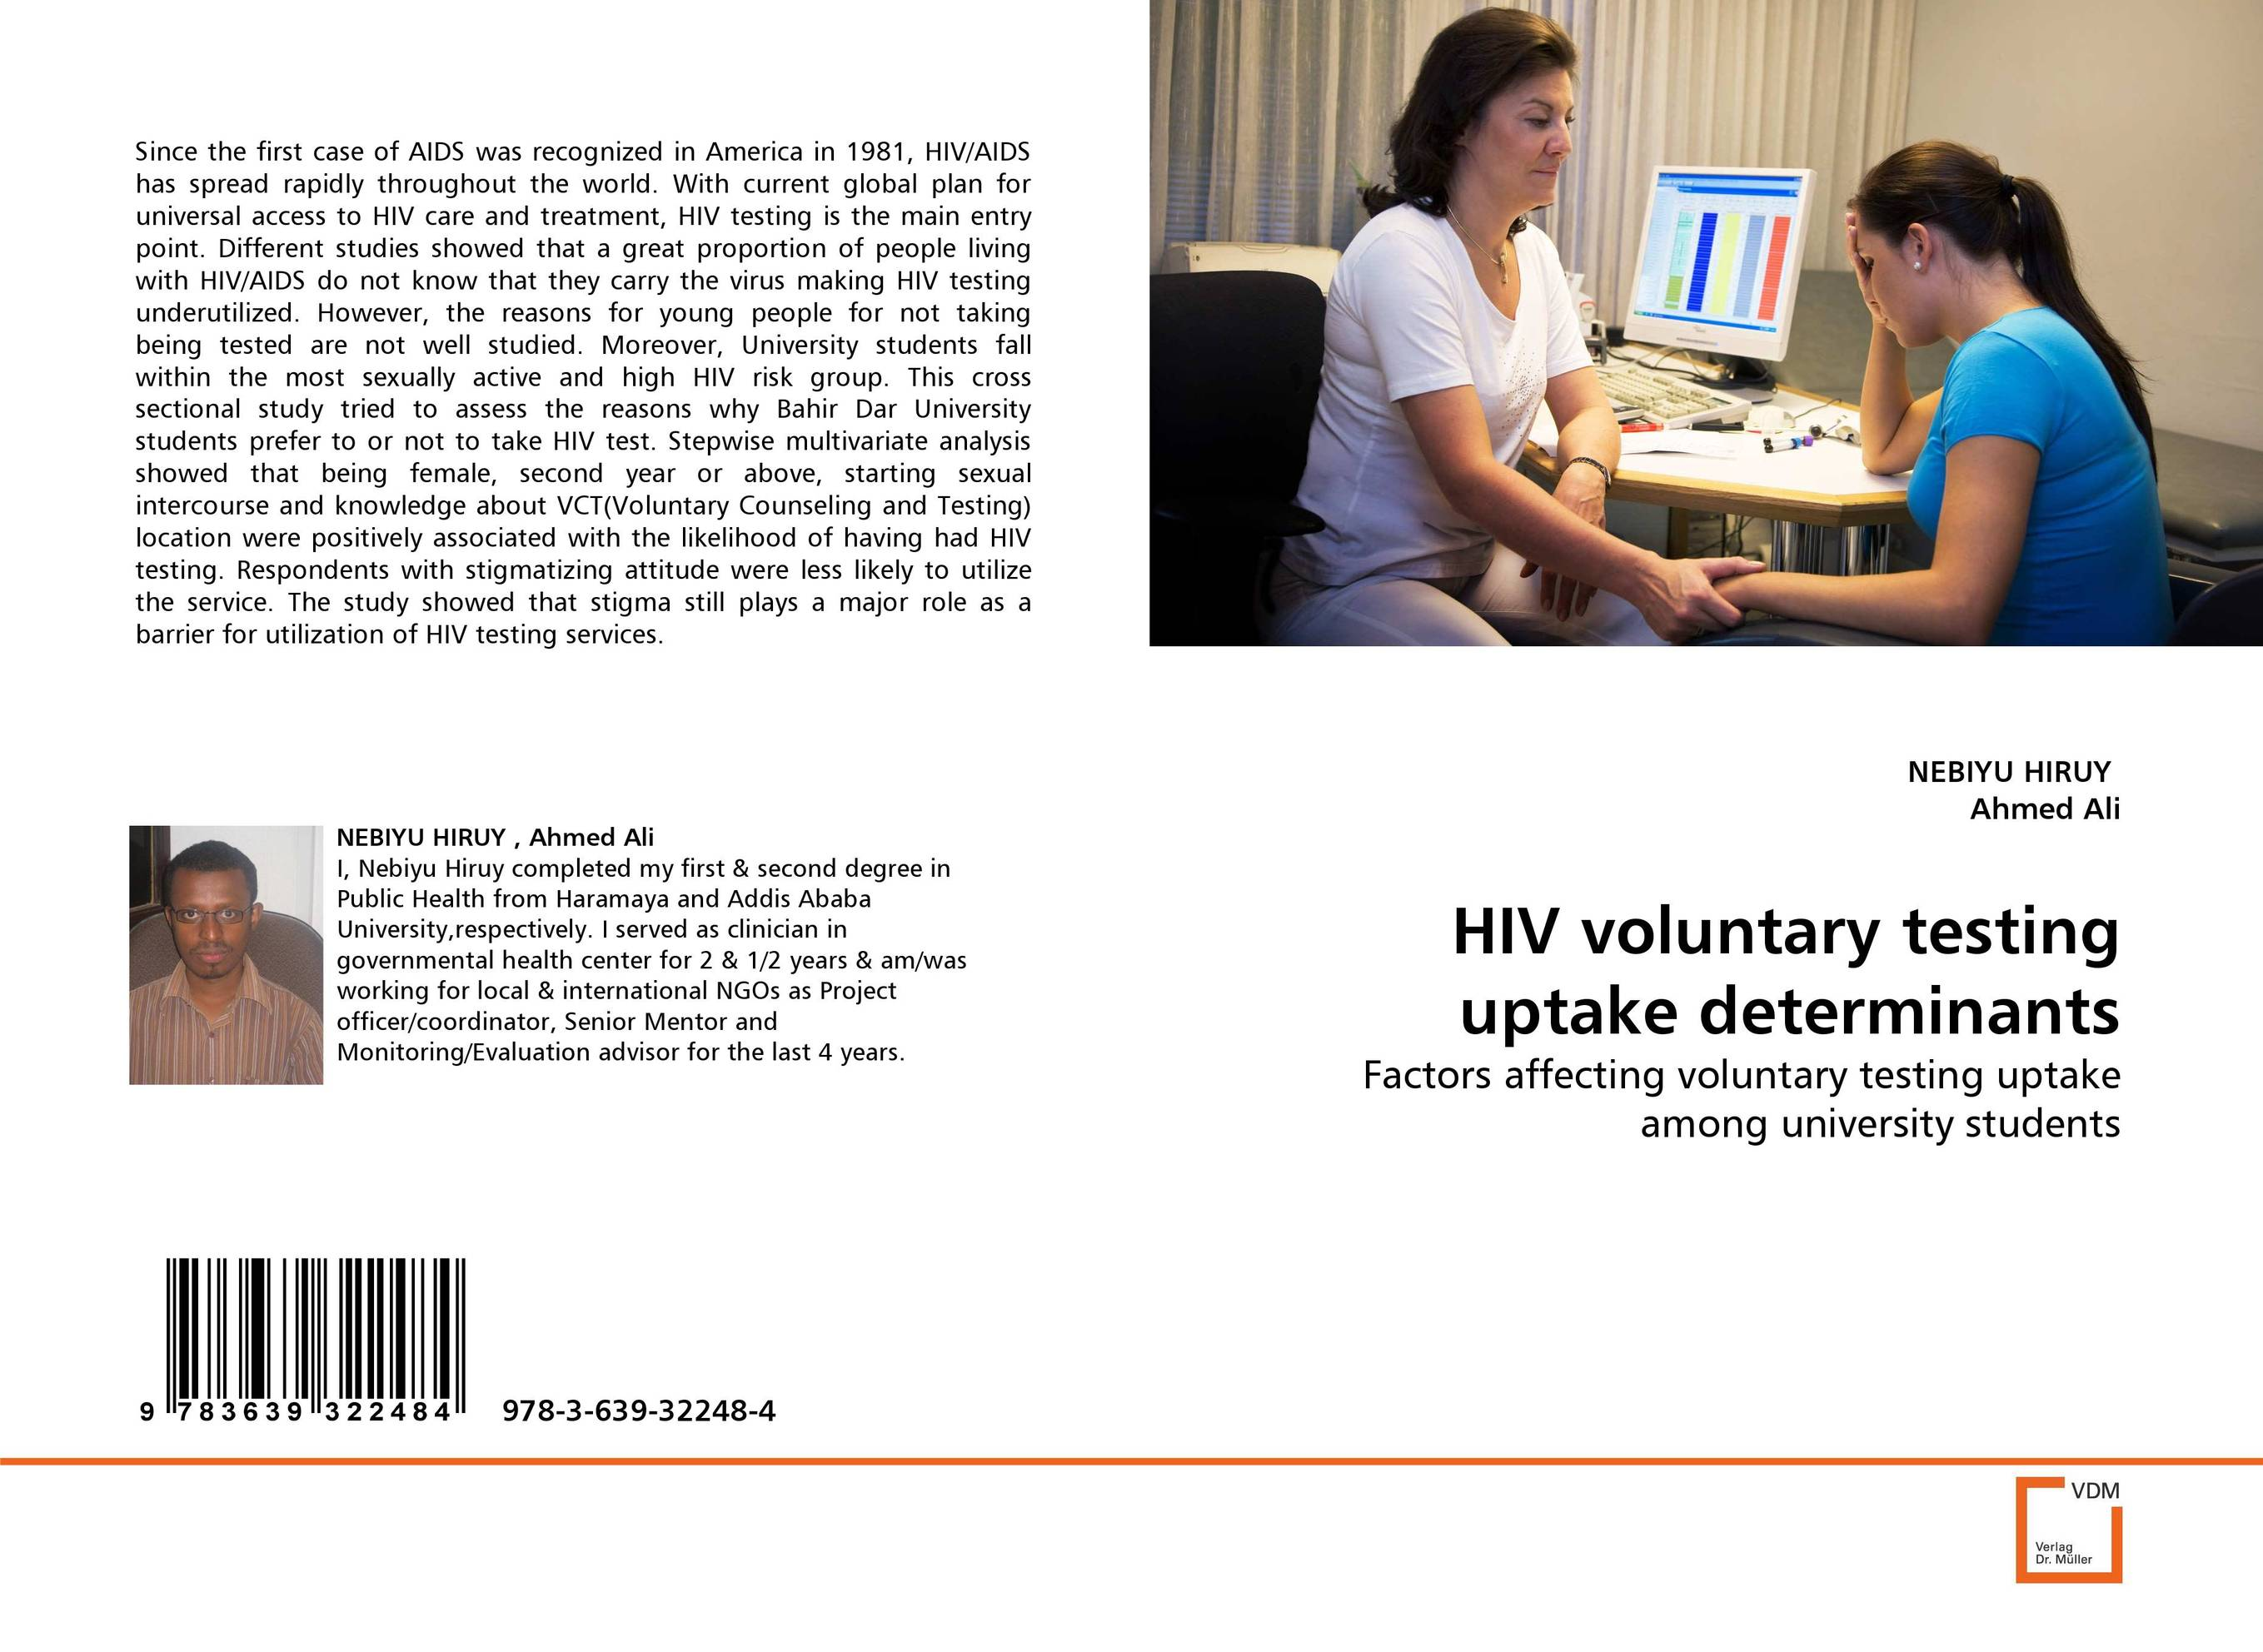 HIV voluntary testing uptake determinants voluntary associations in tsarist russia – science patriotism and civil society